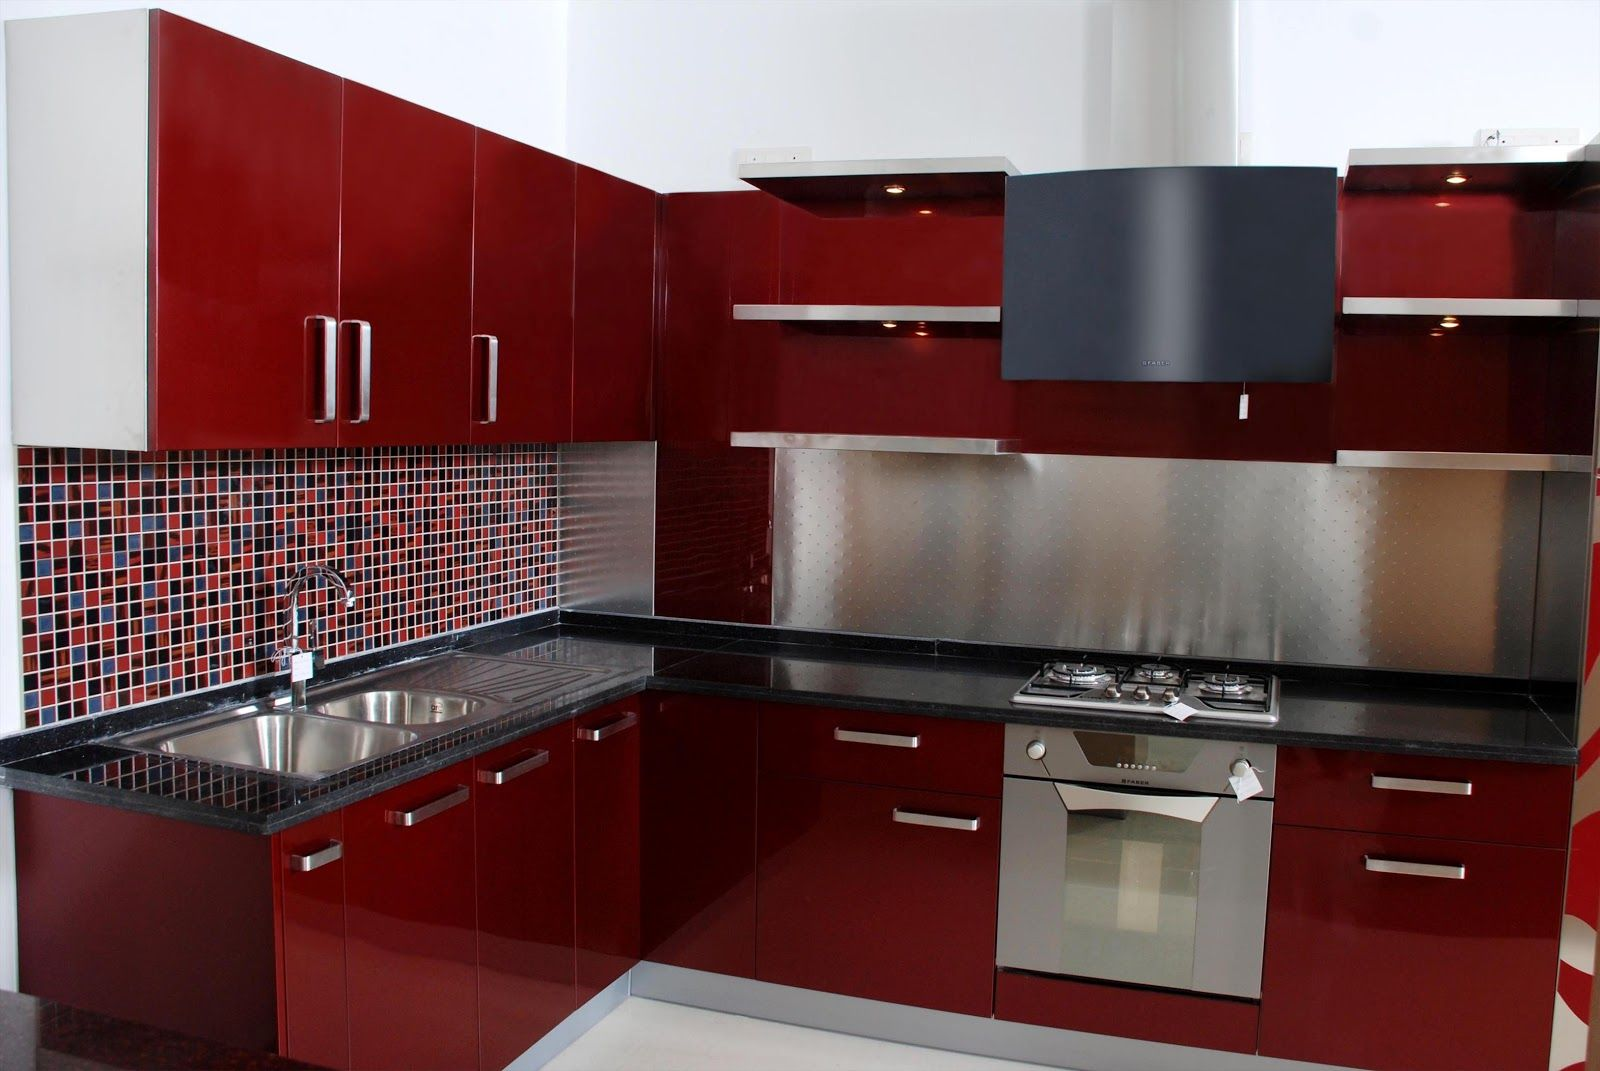 Parallel kitchen design india google search kitchen for Kitchen units design ideas